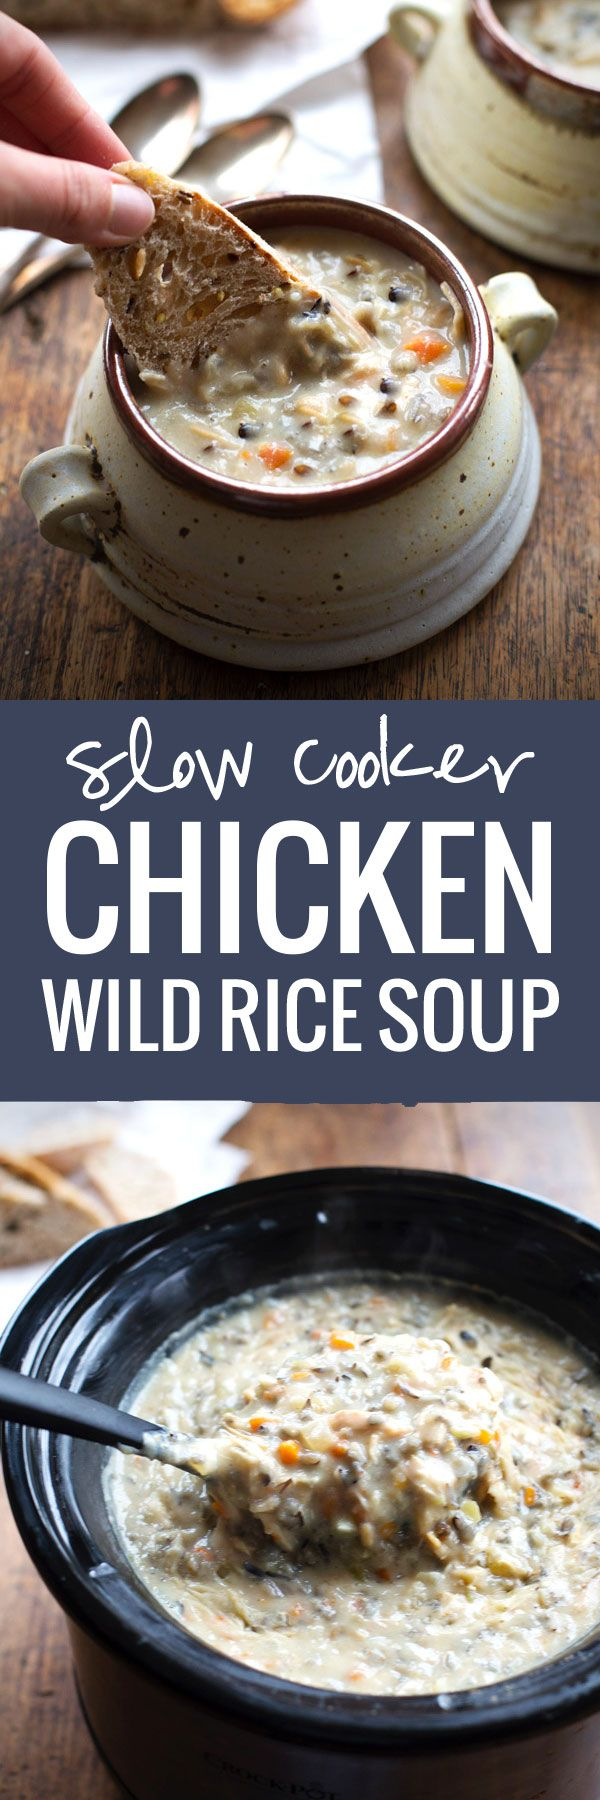 Crockpot Chicken Wild Rice Soup - cozy homemade soup with hardly any prep. | pinchofyum.com( in my pink book)